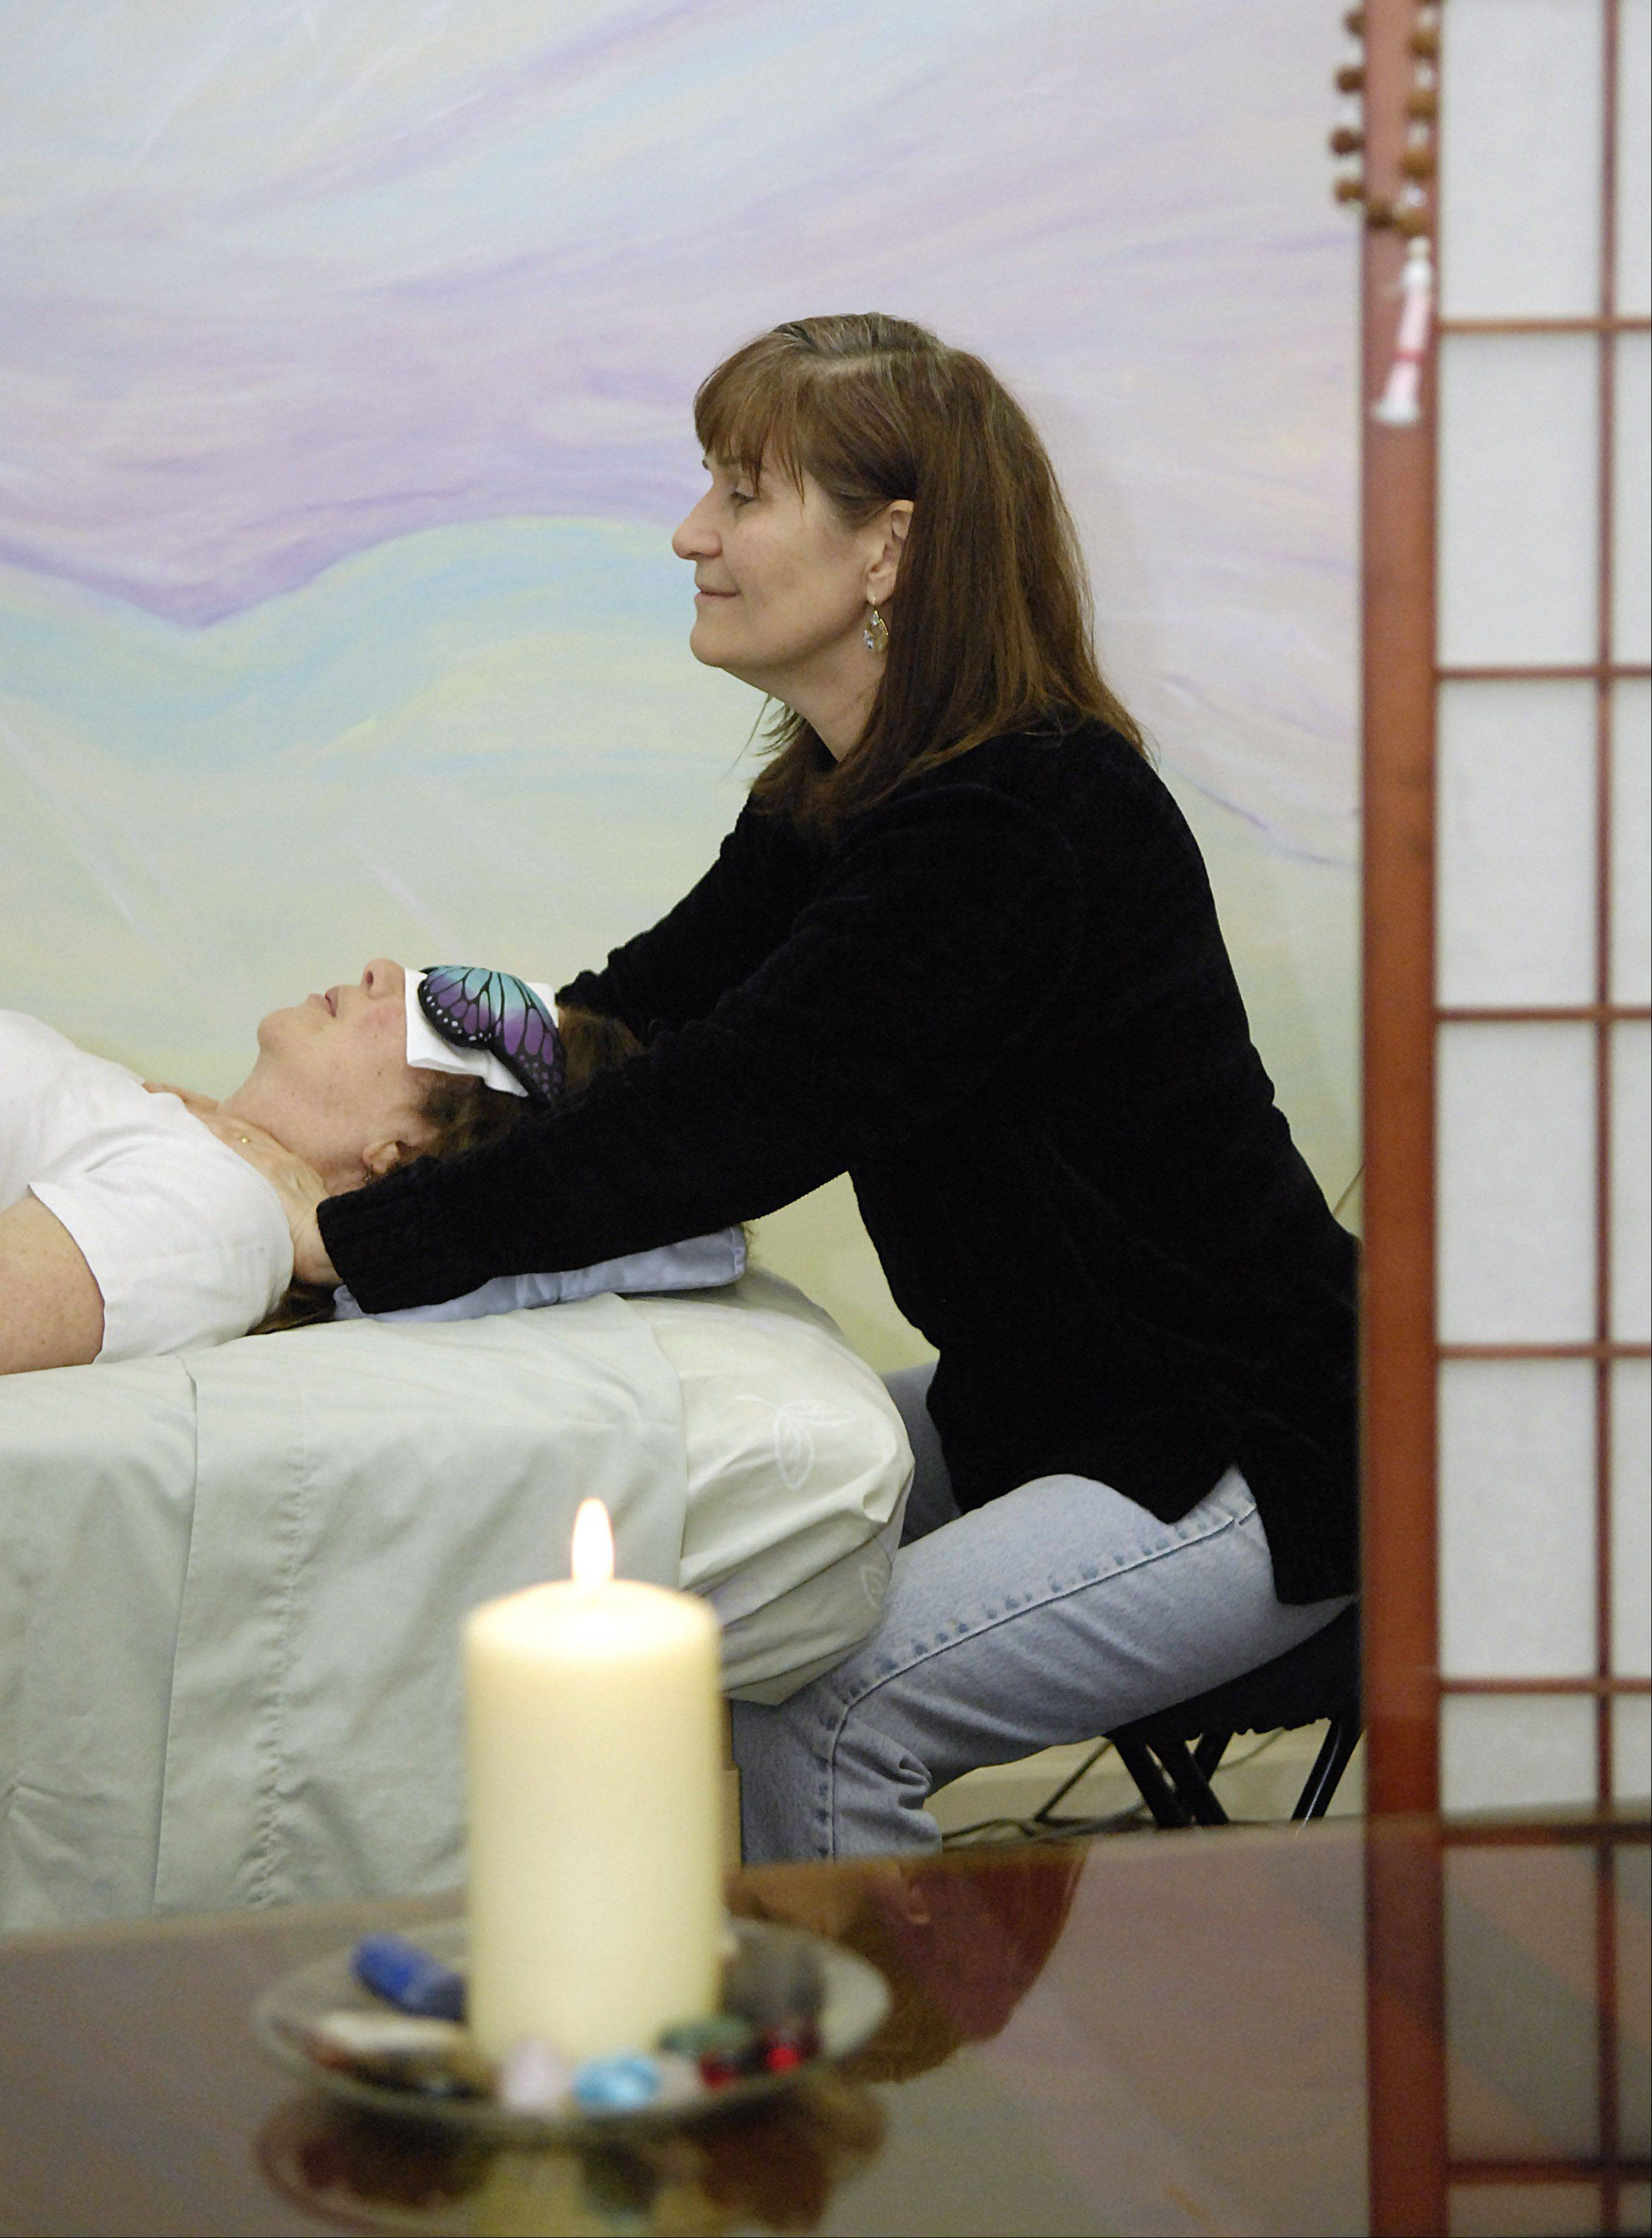 J.R. Carmany, co-owner of Soup to Nuts Alternative Grocery, does a Reiki demonstration. Reiki will be demonstrated at Sunday's Holistic Health Celebration at 716 W. State St., Geneva.